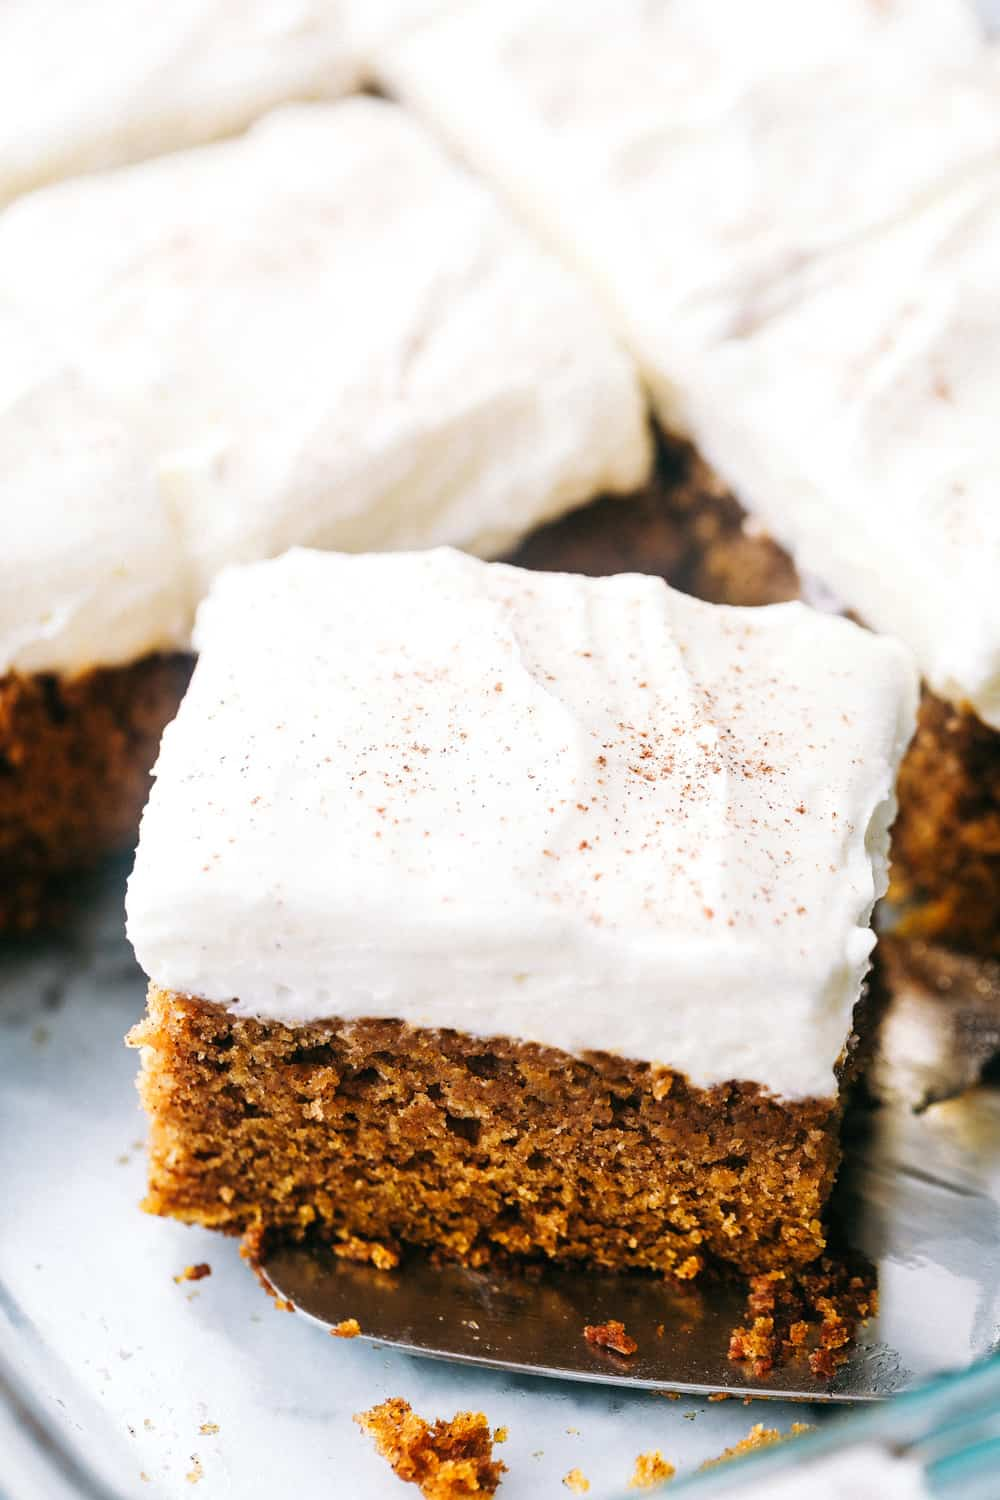 Pumpkin cake with frosting